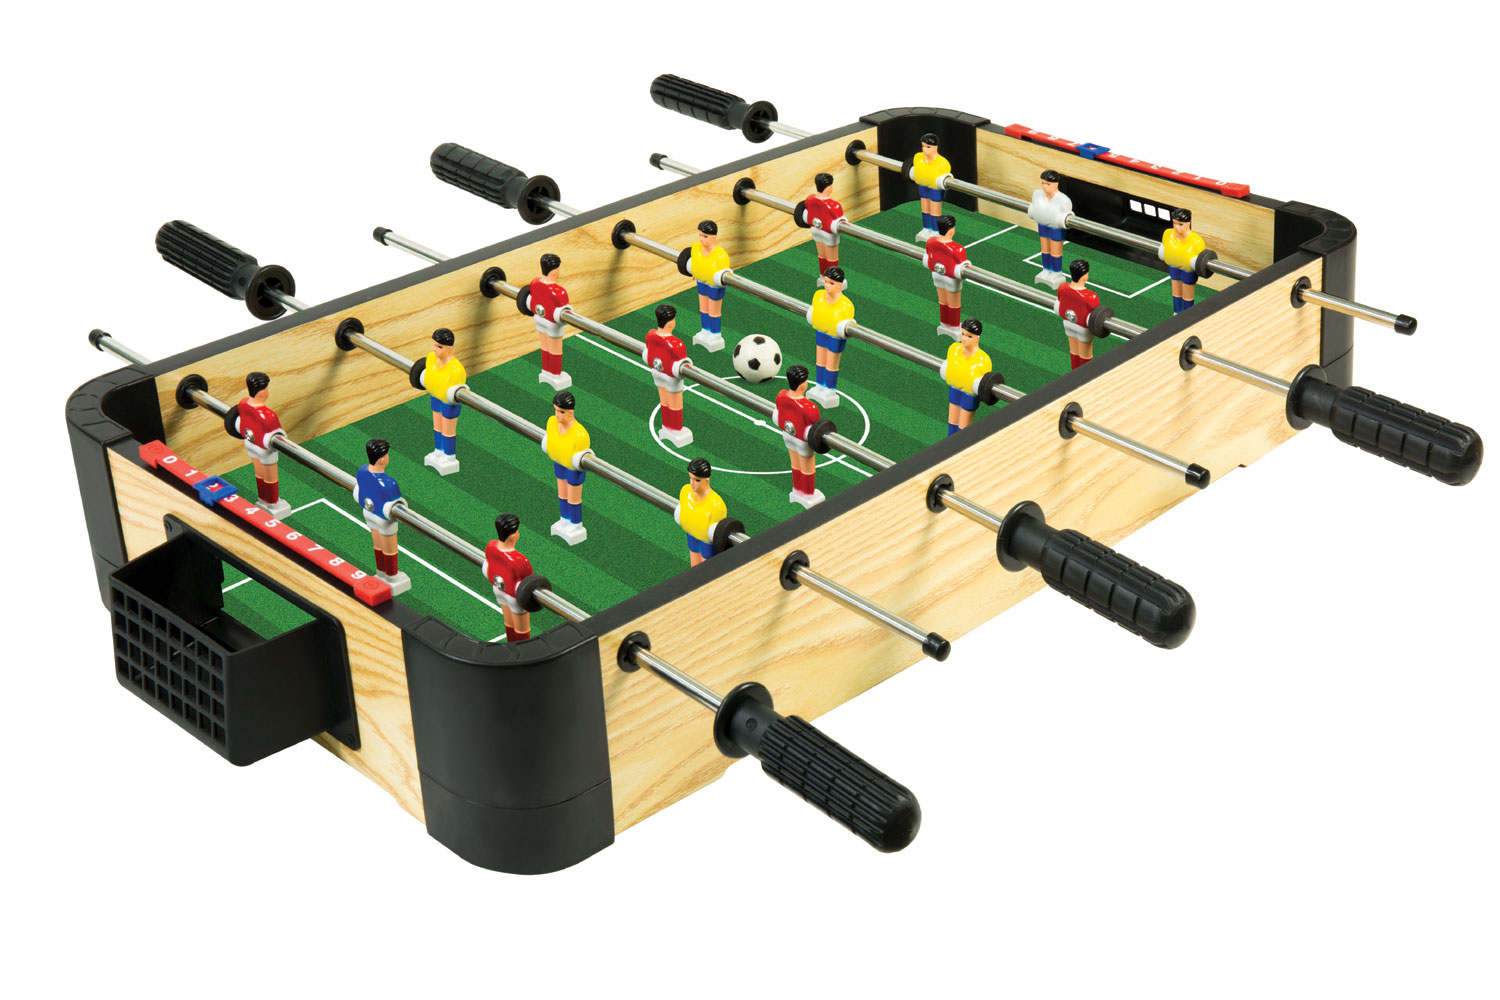 24 Wooden Table Top Foosball Soccer Toys R Us Canada